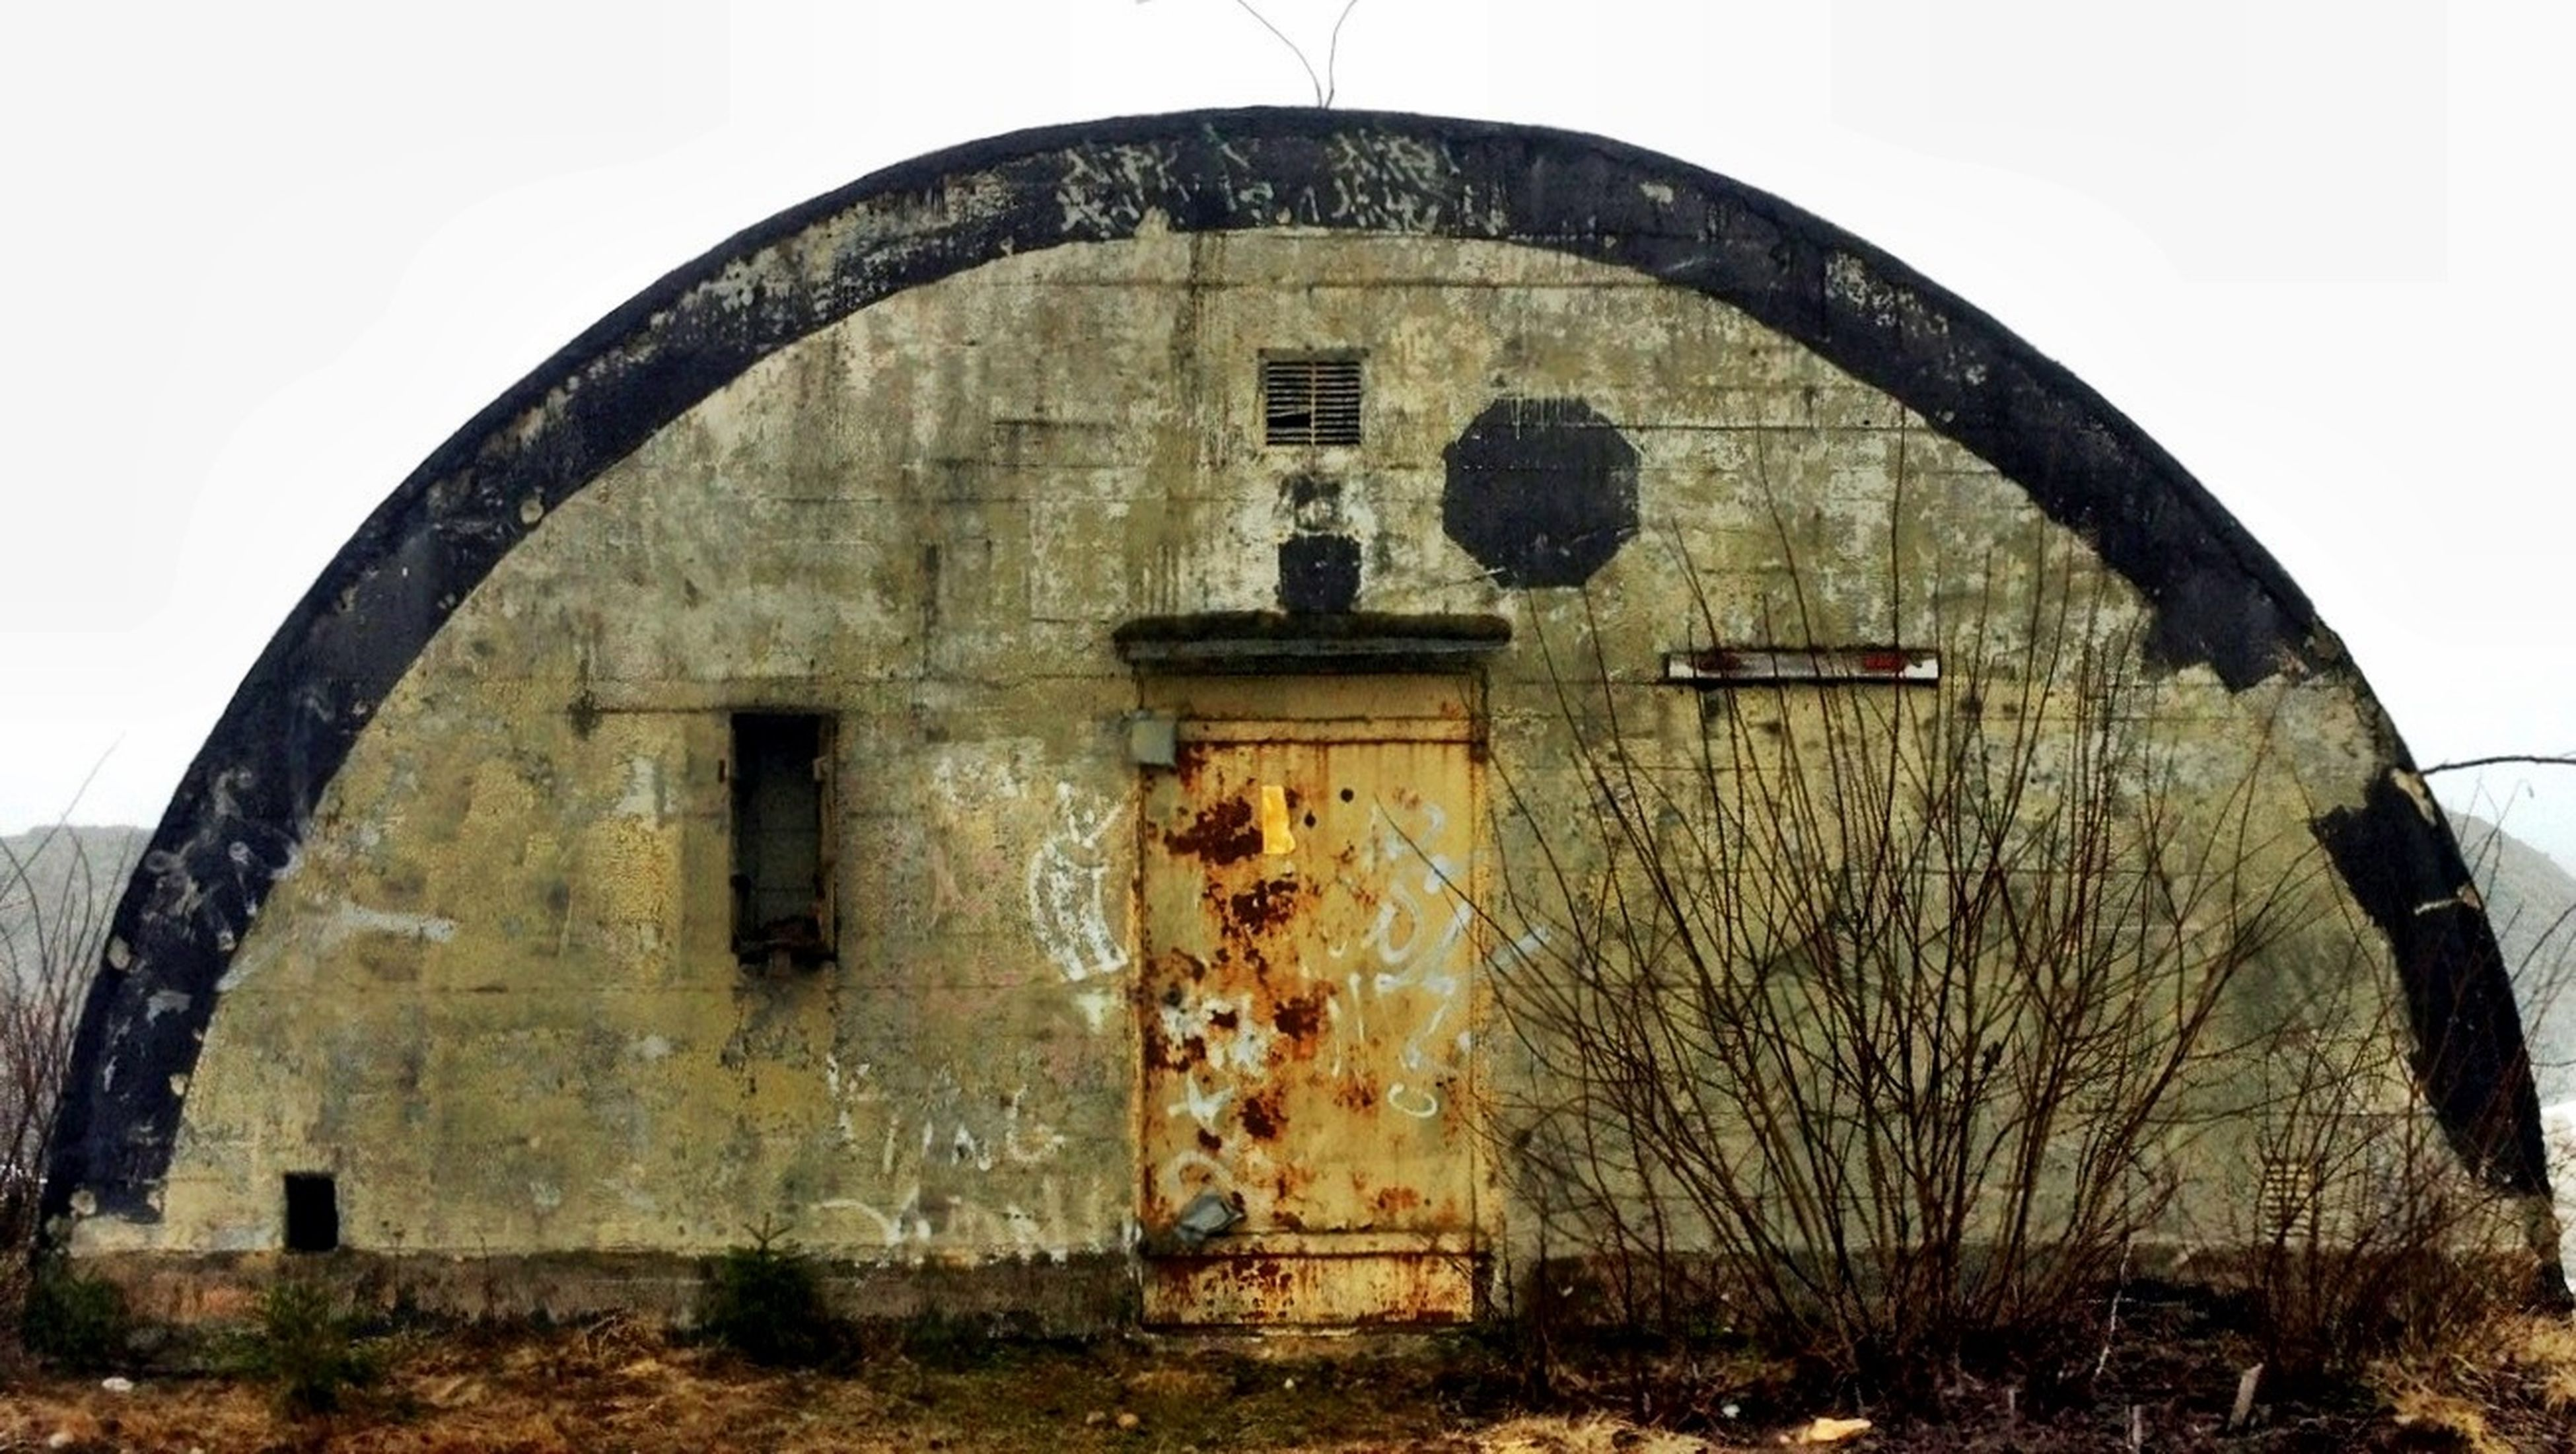 architecture, built structure, building exterior, arch, old, abandoned, house, window, obsolete, weathered, damaged, run-down, sky, clear sky, low angle view, tree, day, wall - building feature, bare tree, outdoors